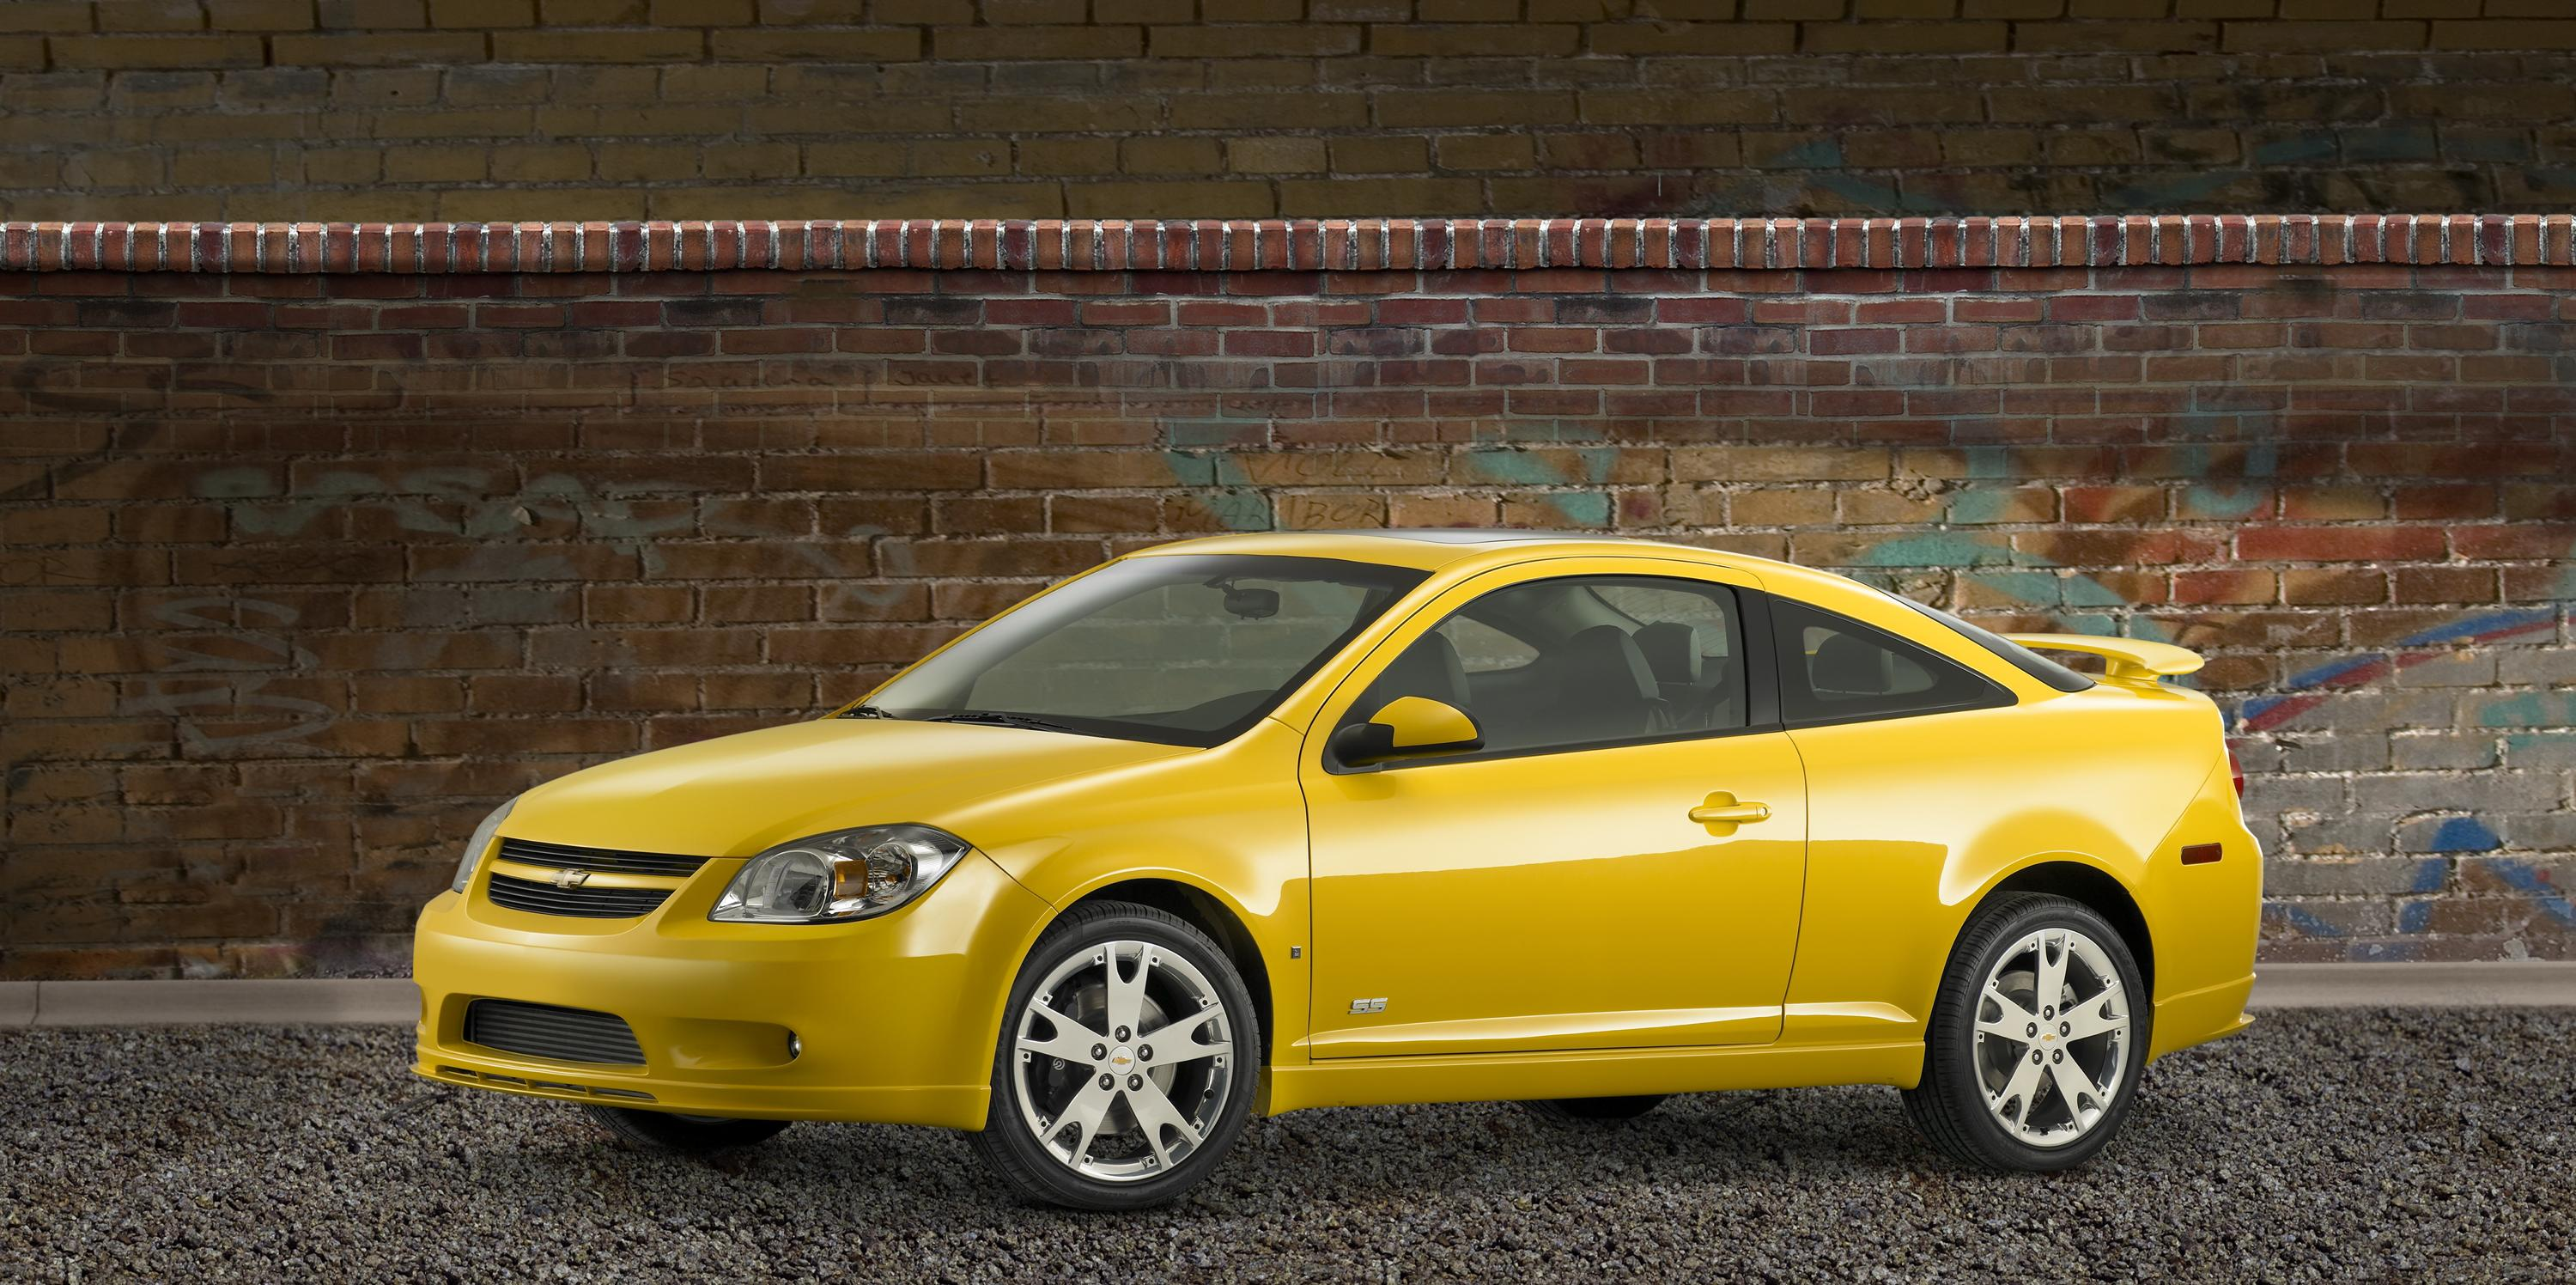 2008 chevrolet cobalt ss turbo top speed. Black Bedroom Furniture Sets. Home Design Ideas